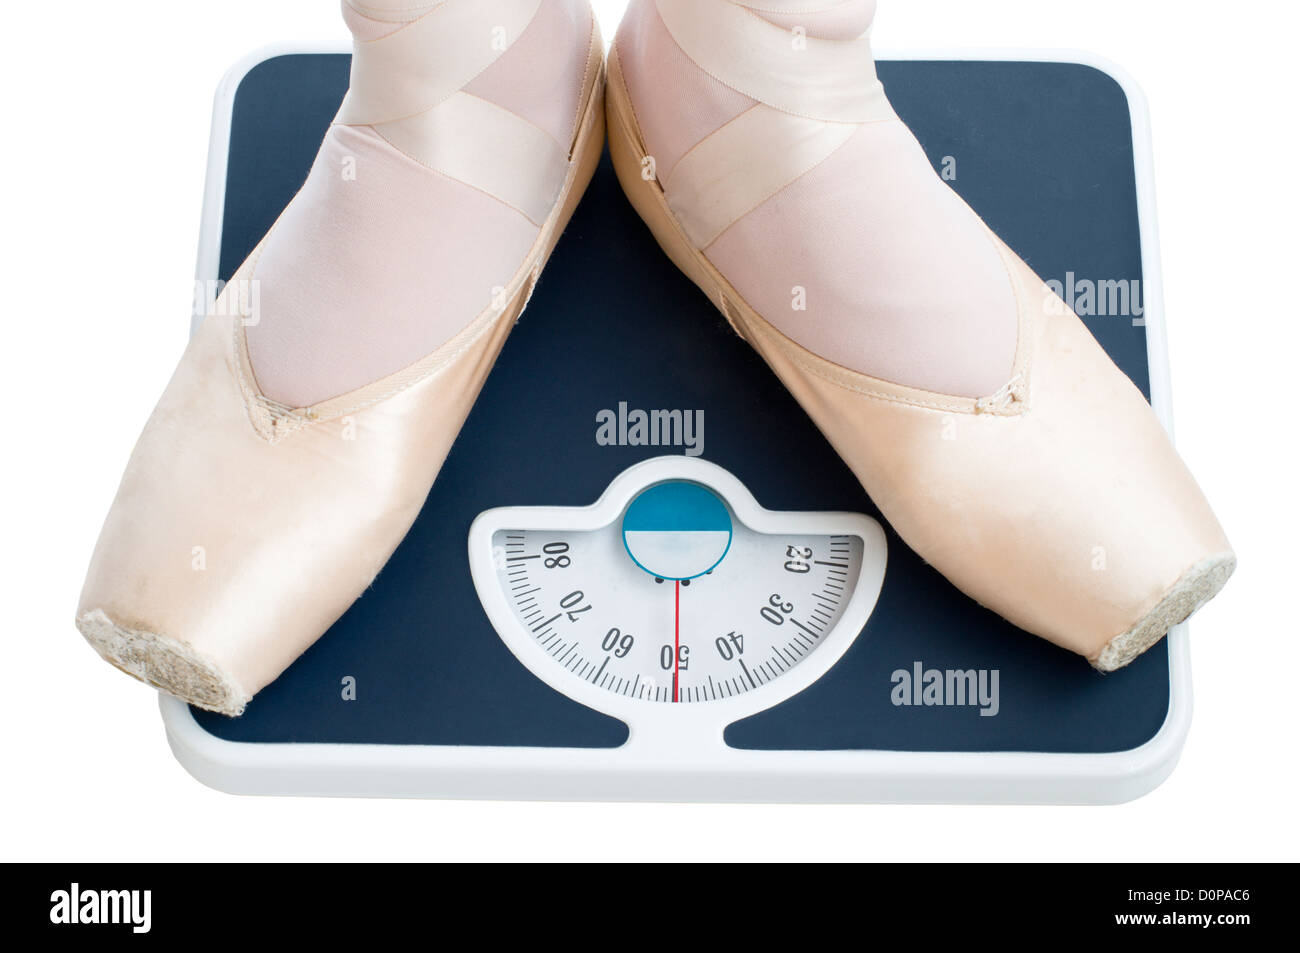 ballet dancer standing on the bathroom scales - Stock Image